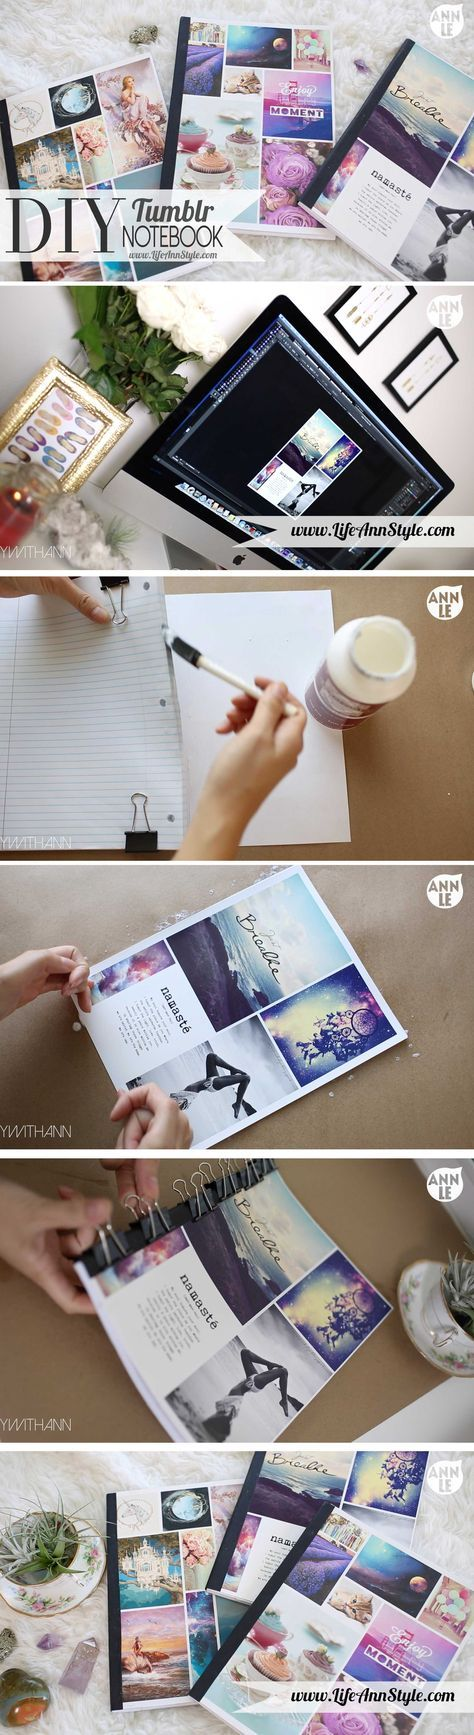 best cool stuff to make images on pinterest good ideas